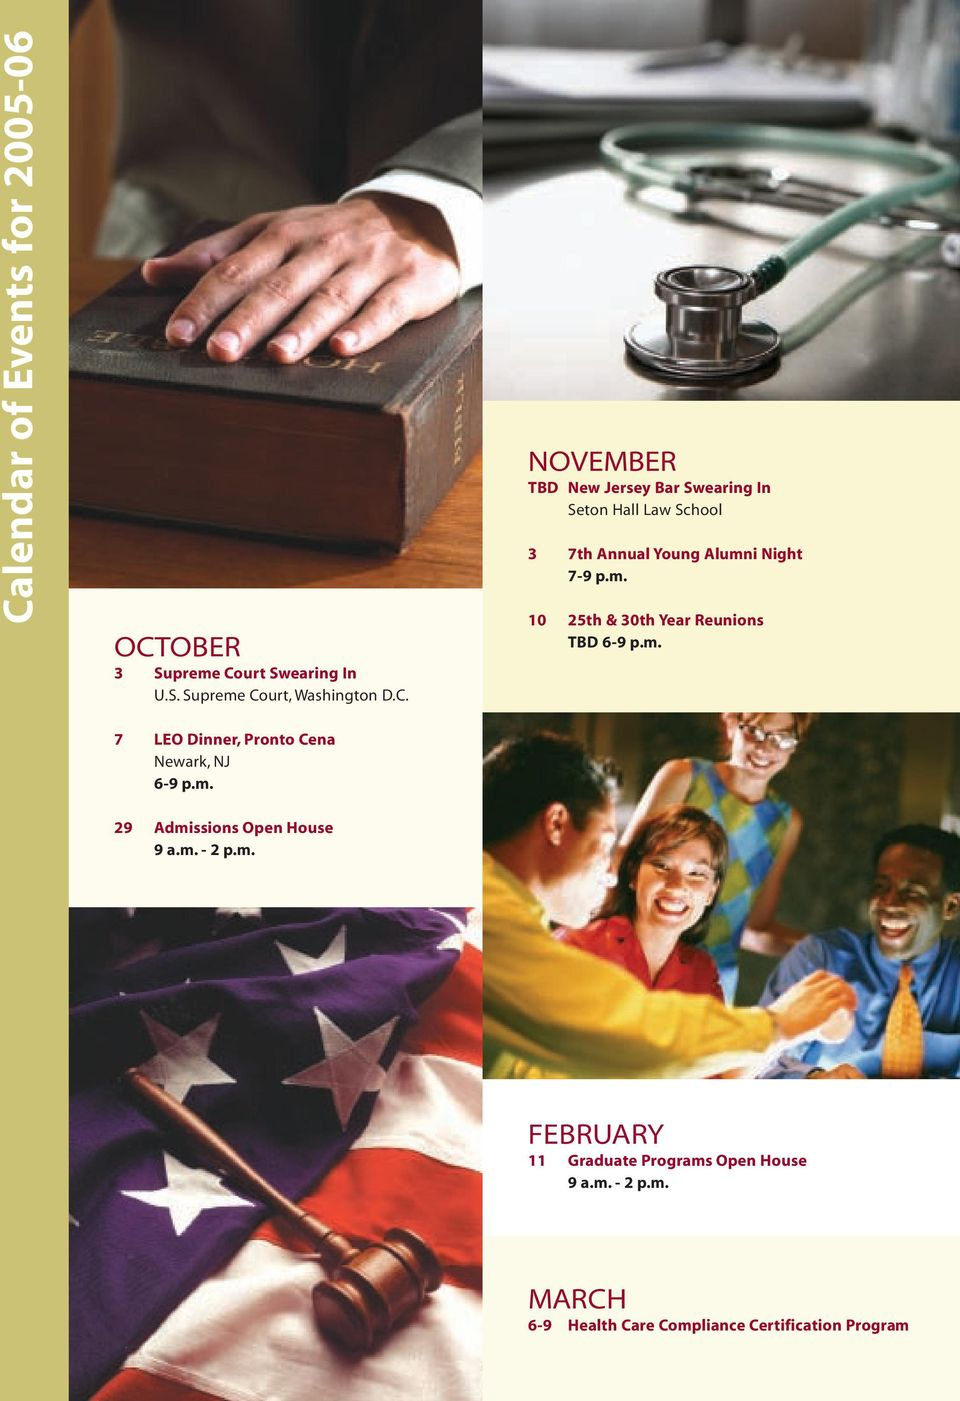 m. - 2 p.m. FEBRUARY 11 Graduate Programs Open House 9 a.m. - 2 p.m. MARCH 6-9 Health Care Compliance Certification Program